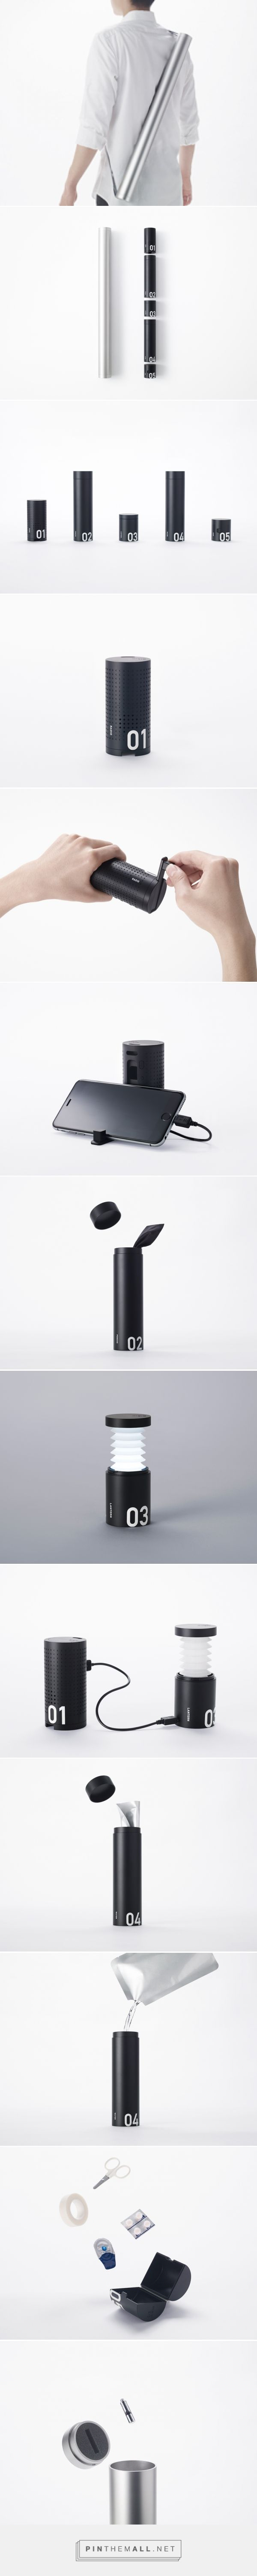 nendo organizes emergency kit essentials within a single, compact tube - created via http://pinthemall.net